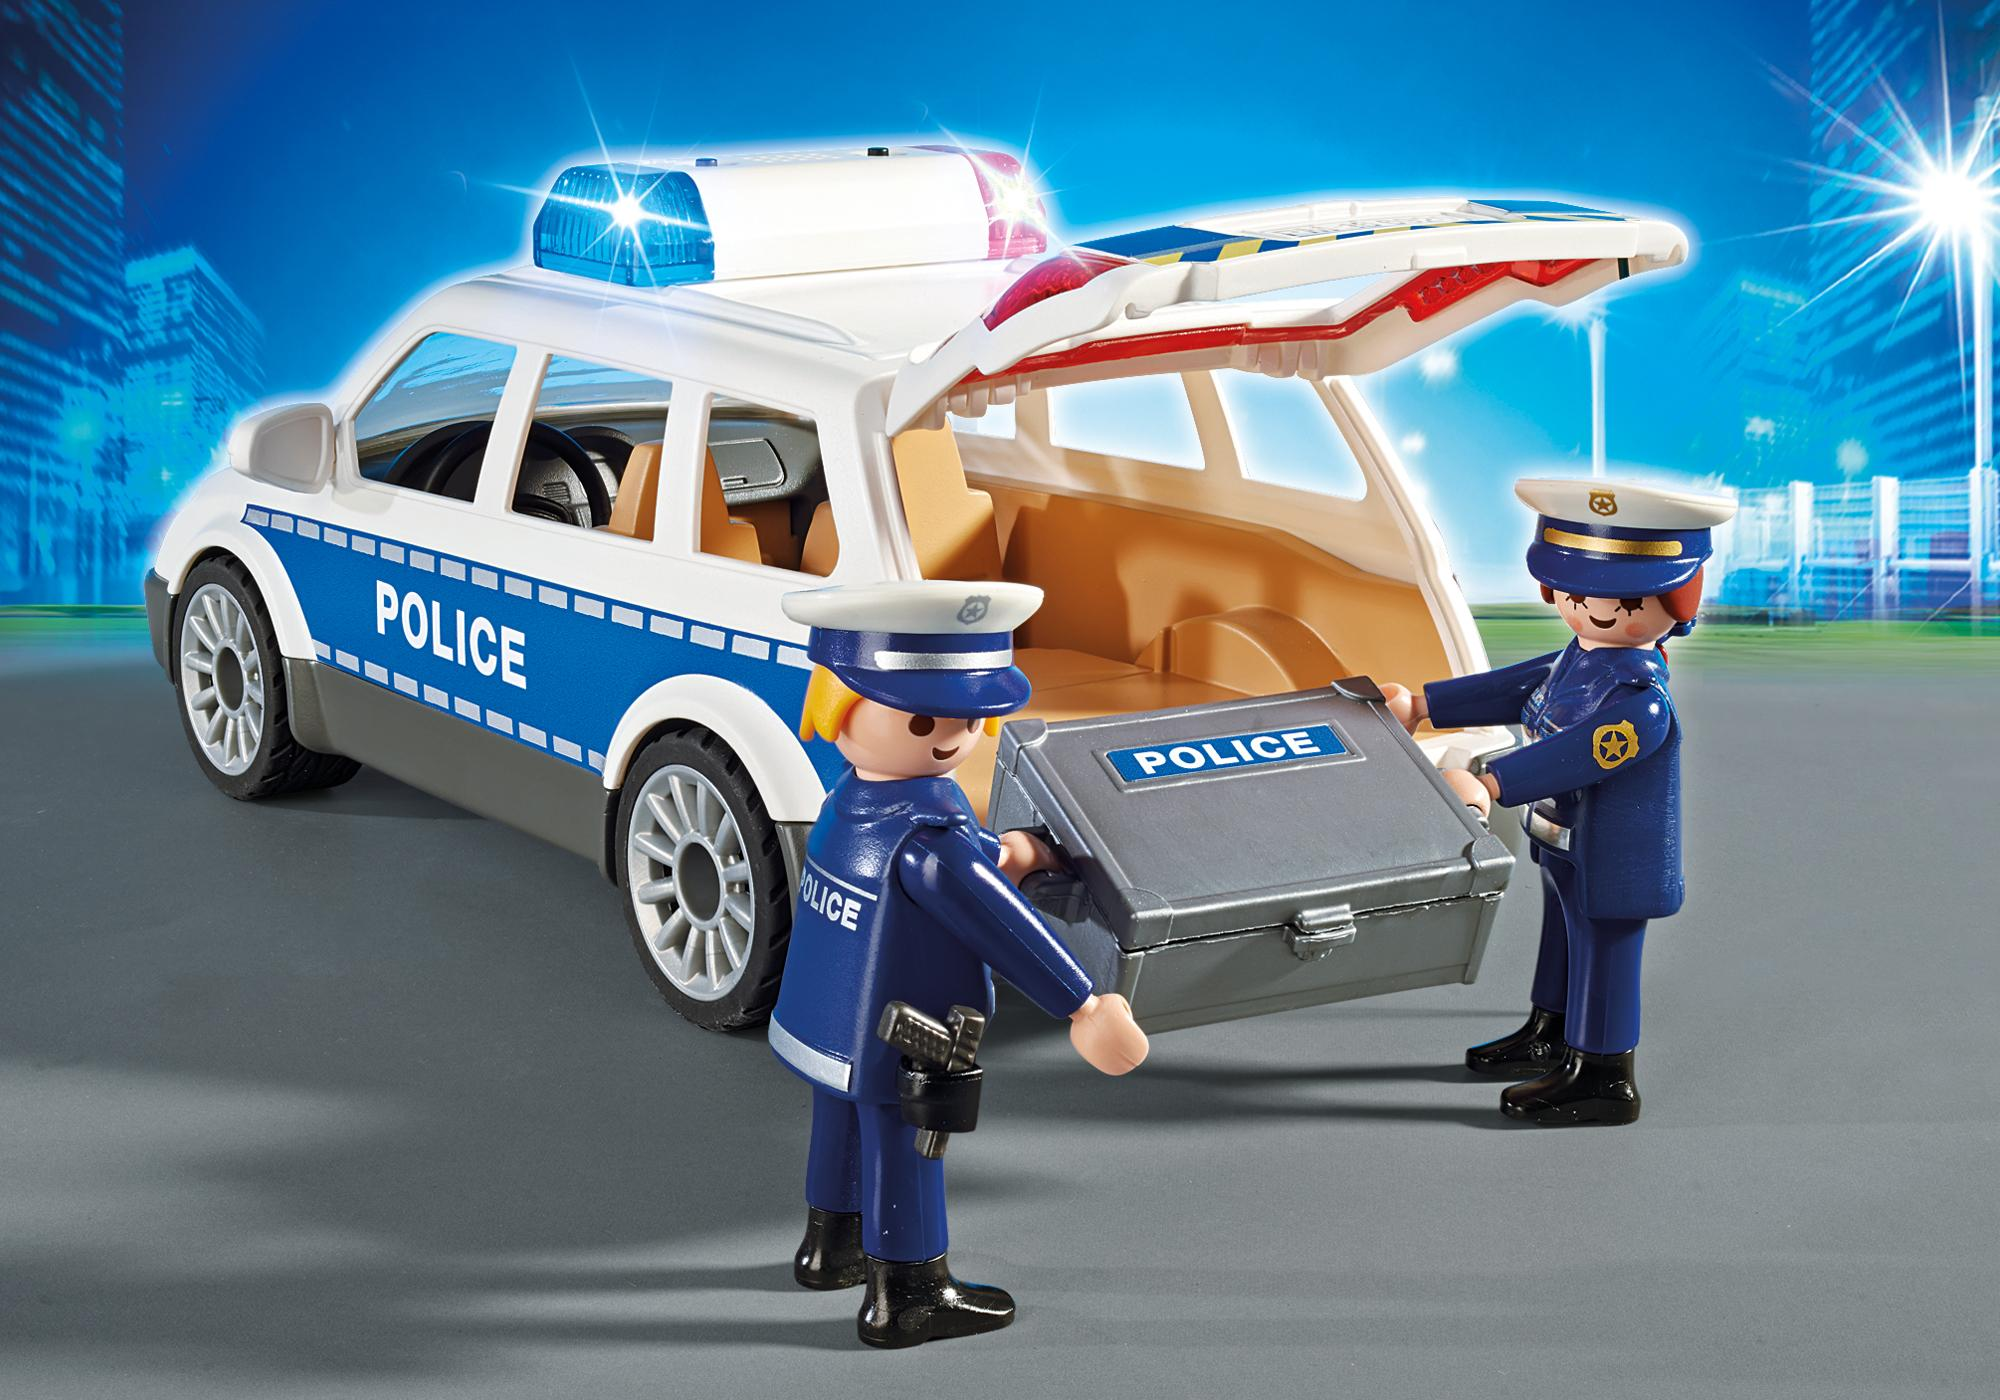 http://media.playmobil.com/i/playmobil/6920_product_extra1